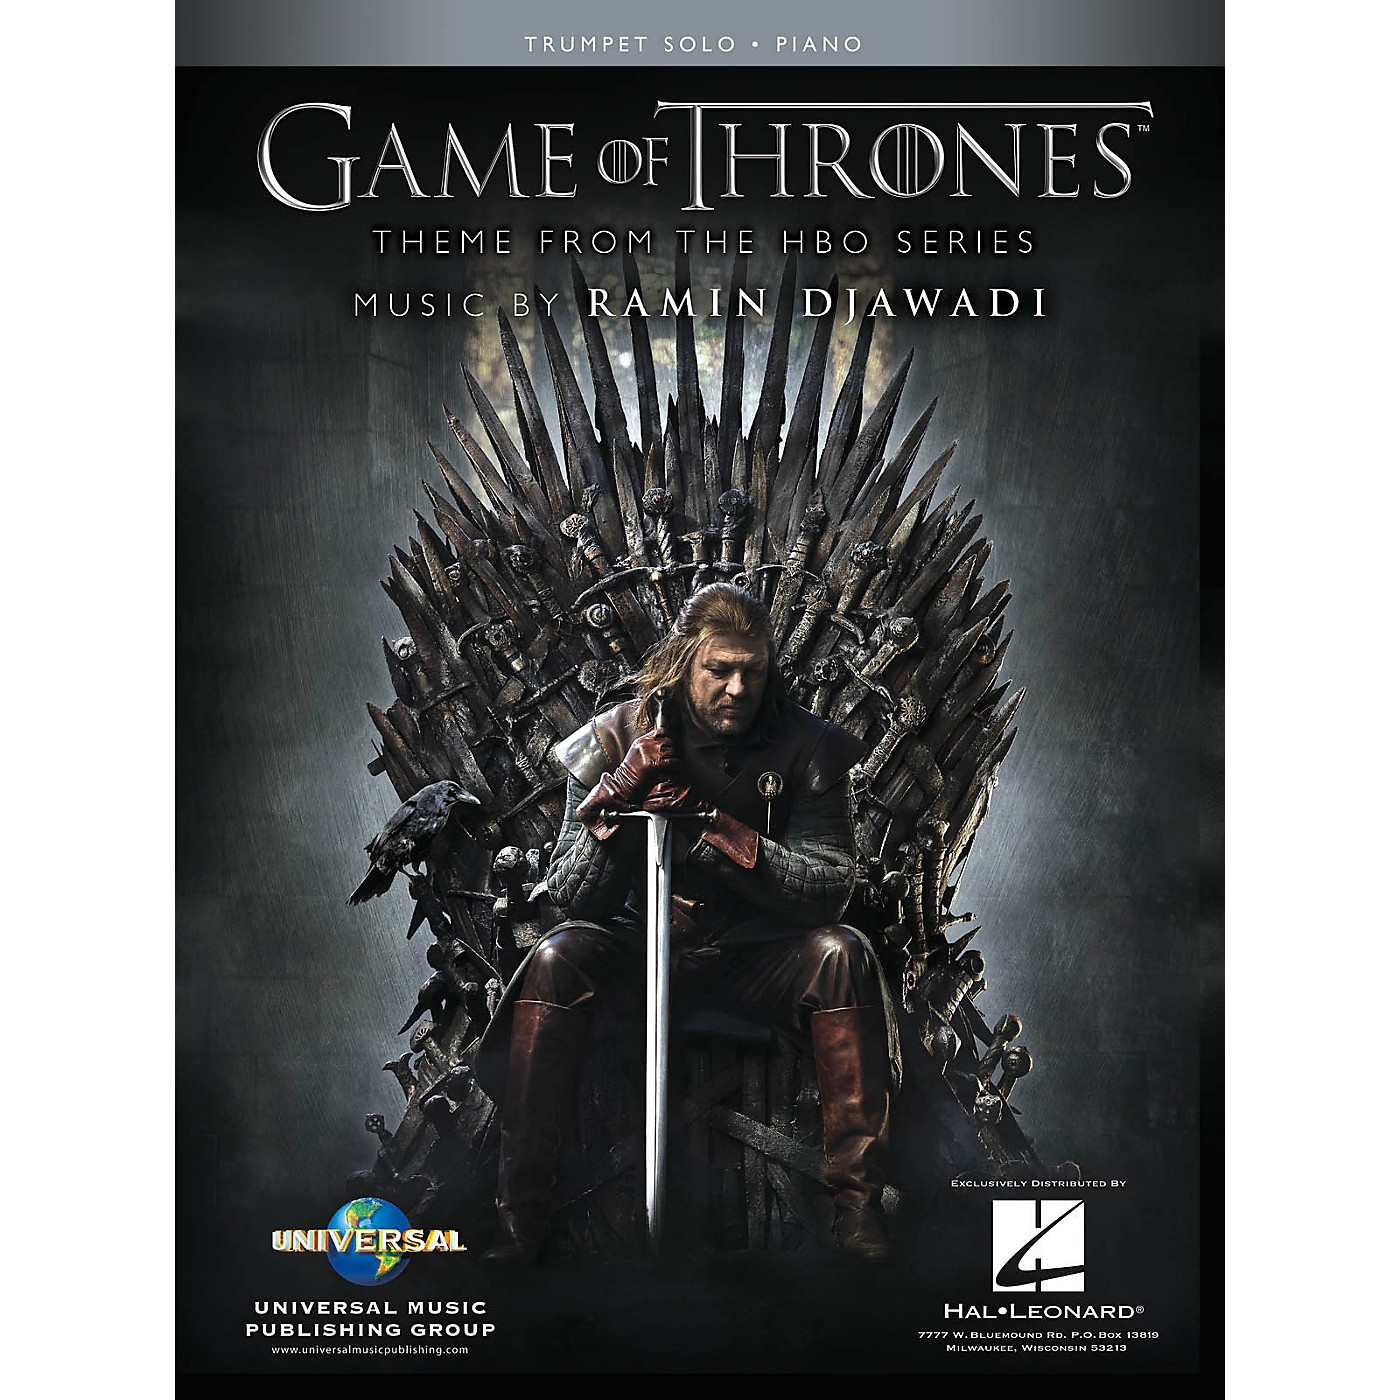 Hal Leonard Game of Thrones for Trumpet & Piano Instrumental Solo Book thumbnail